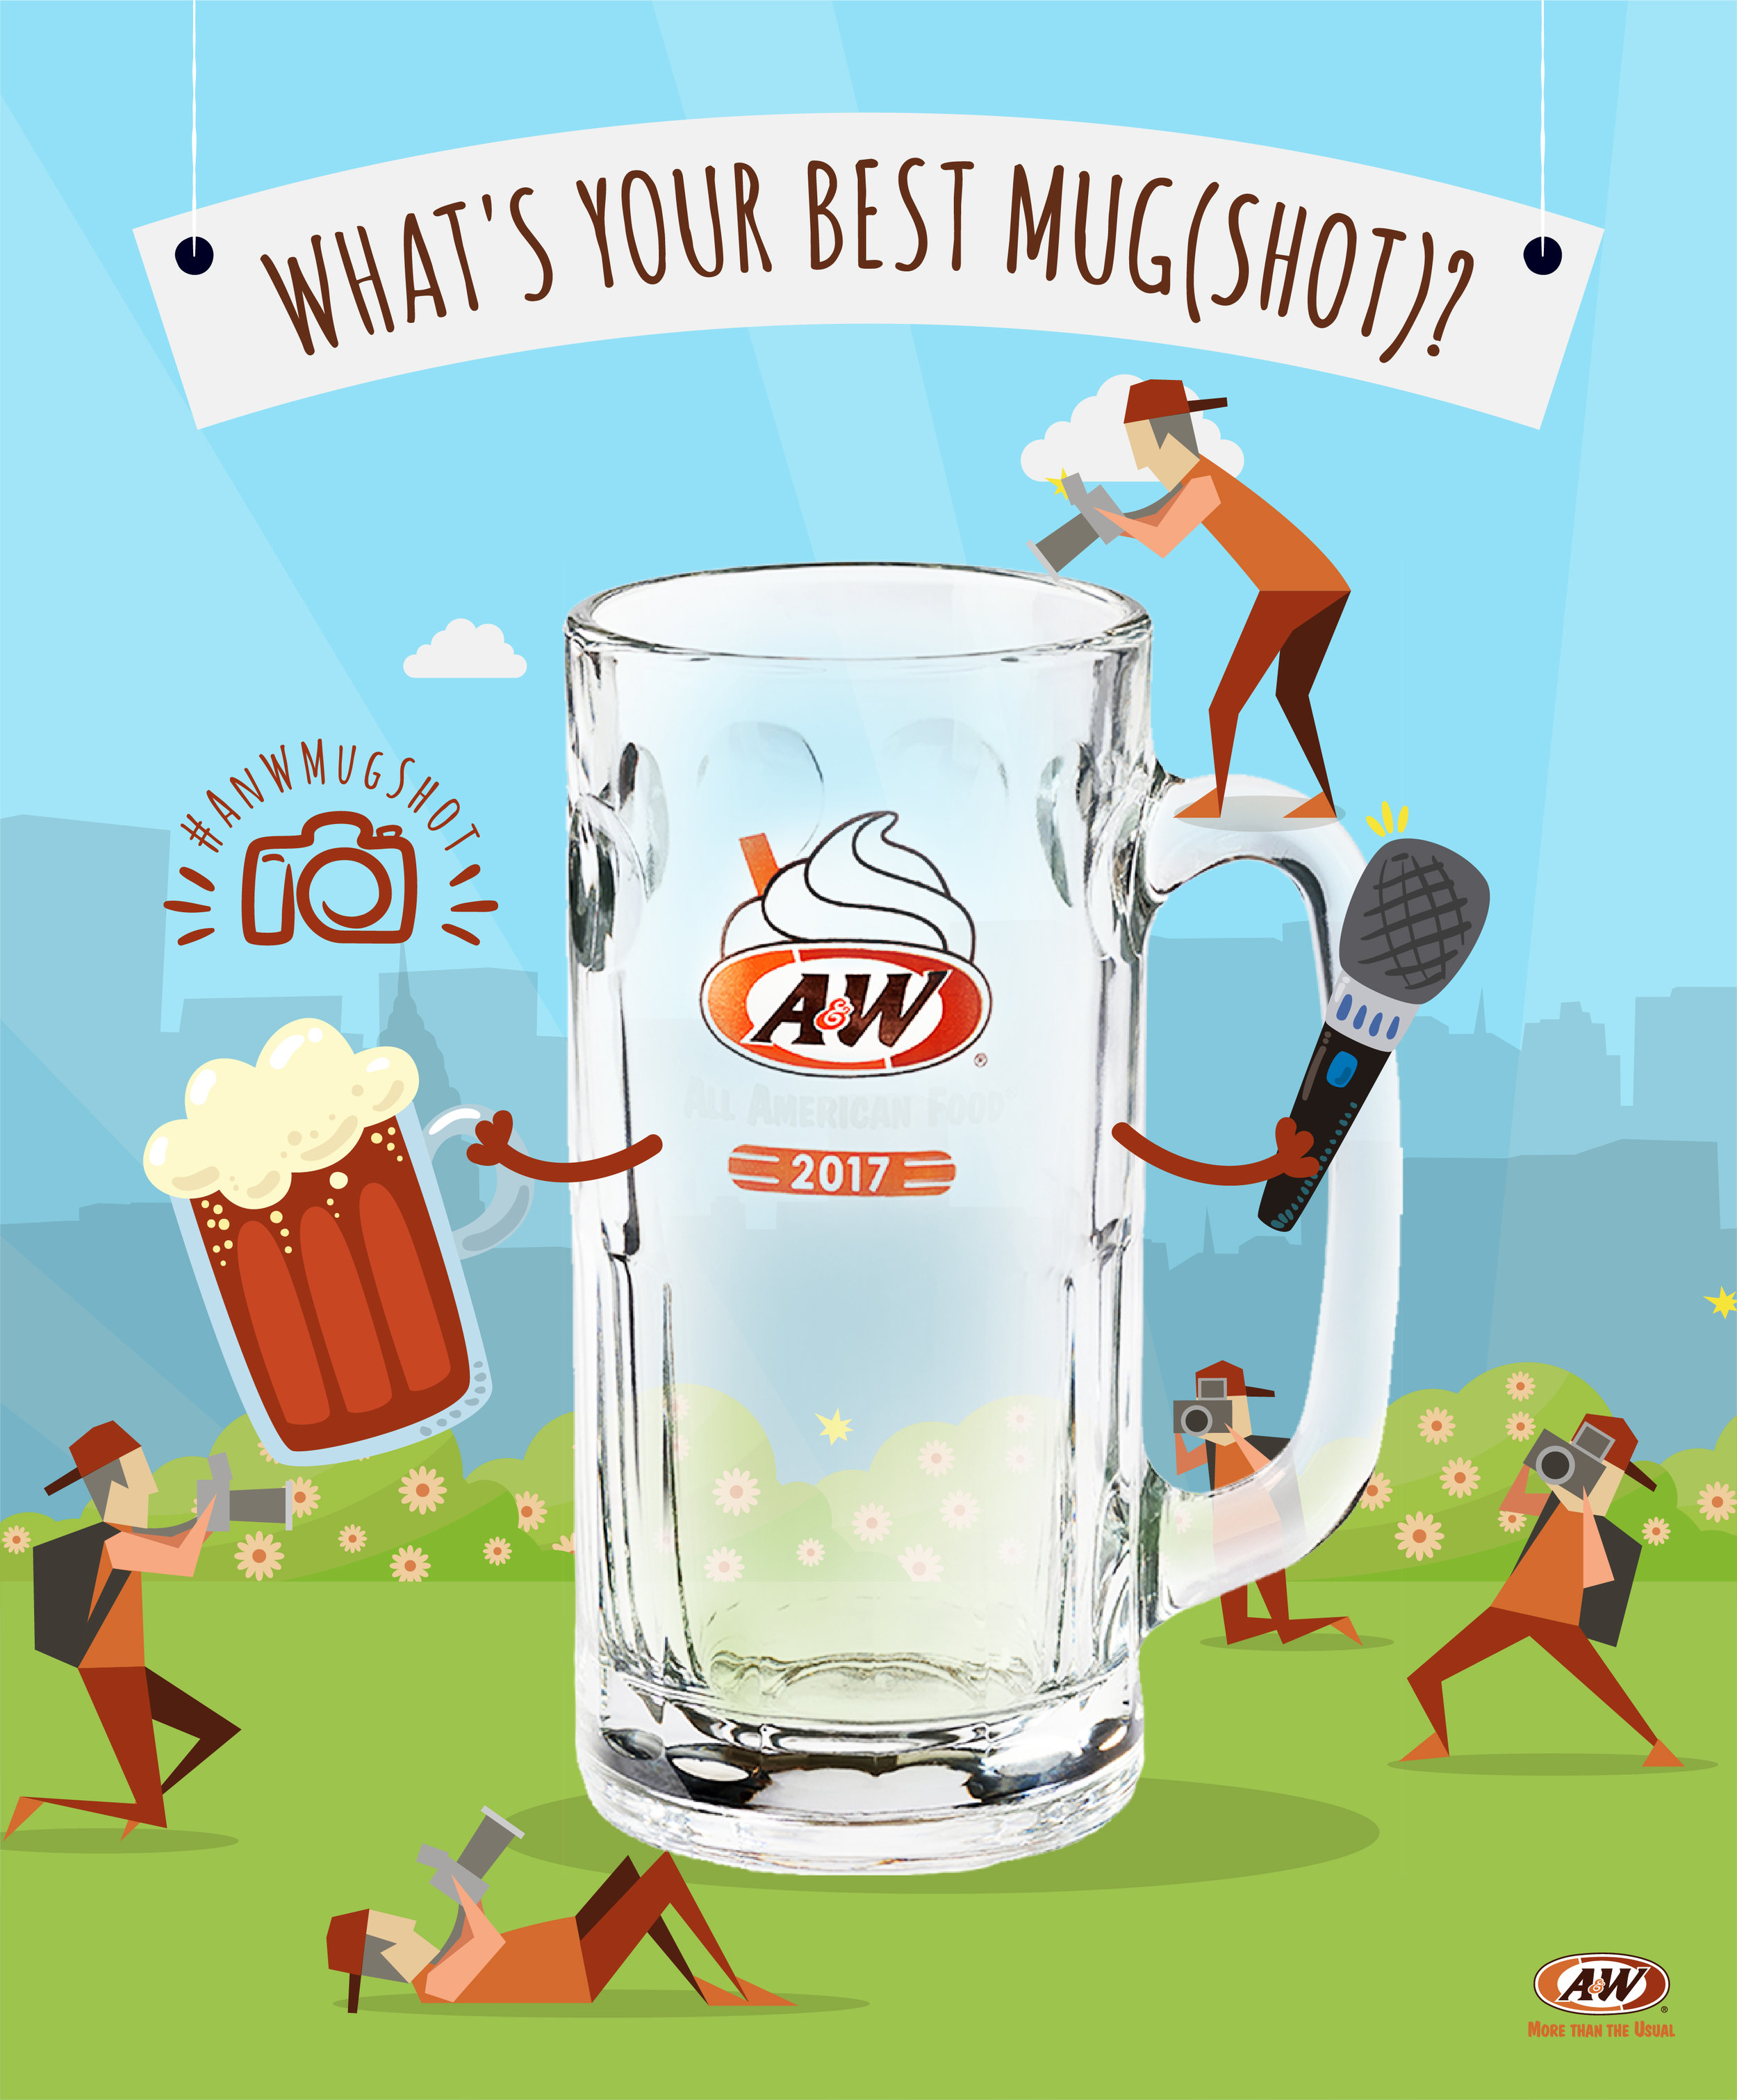 A&W_FB_Oct_RB Mug Campaign_for A&W-01.jpg